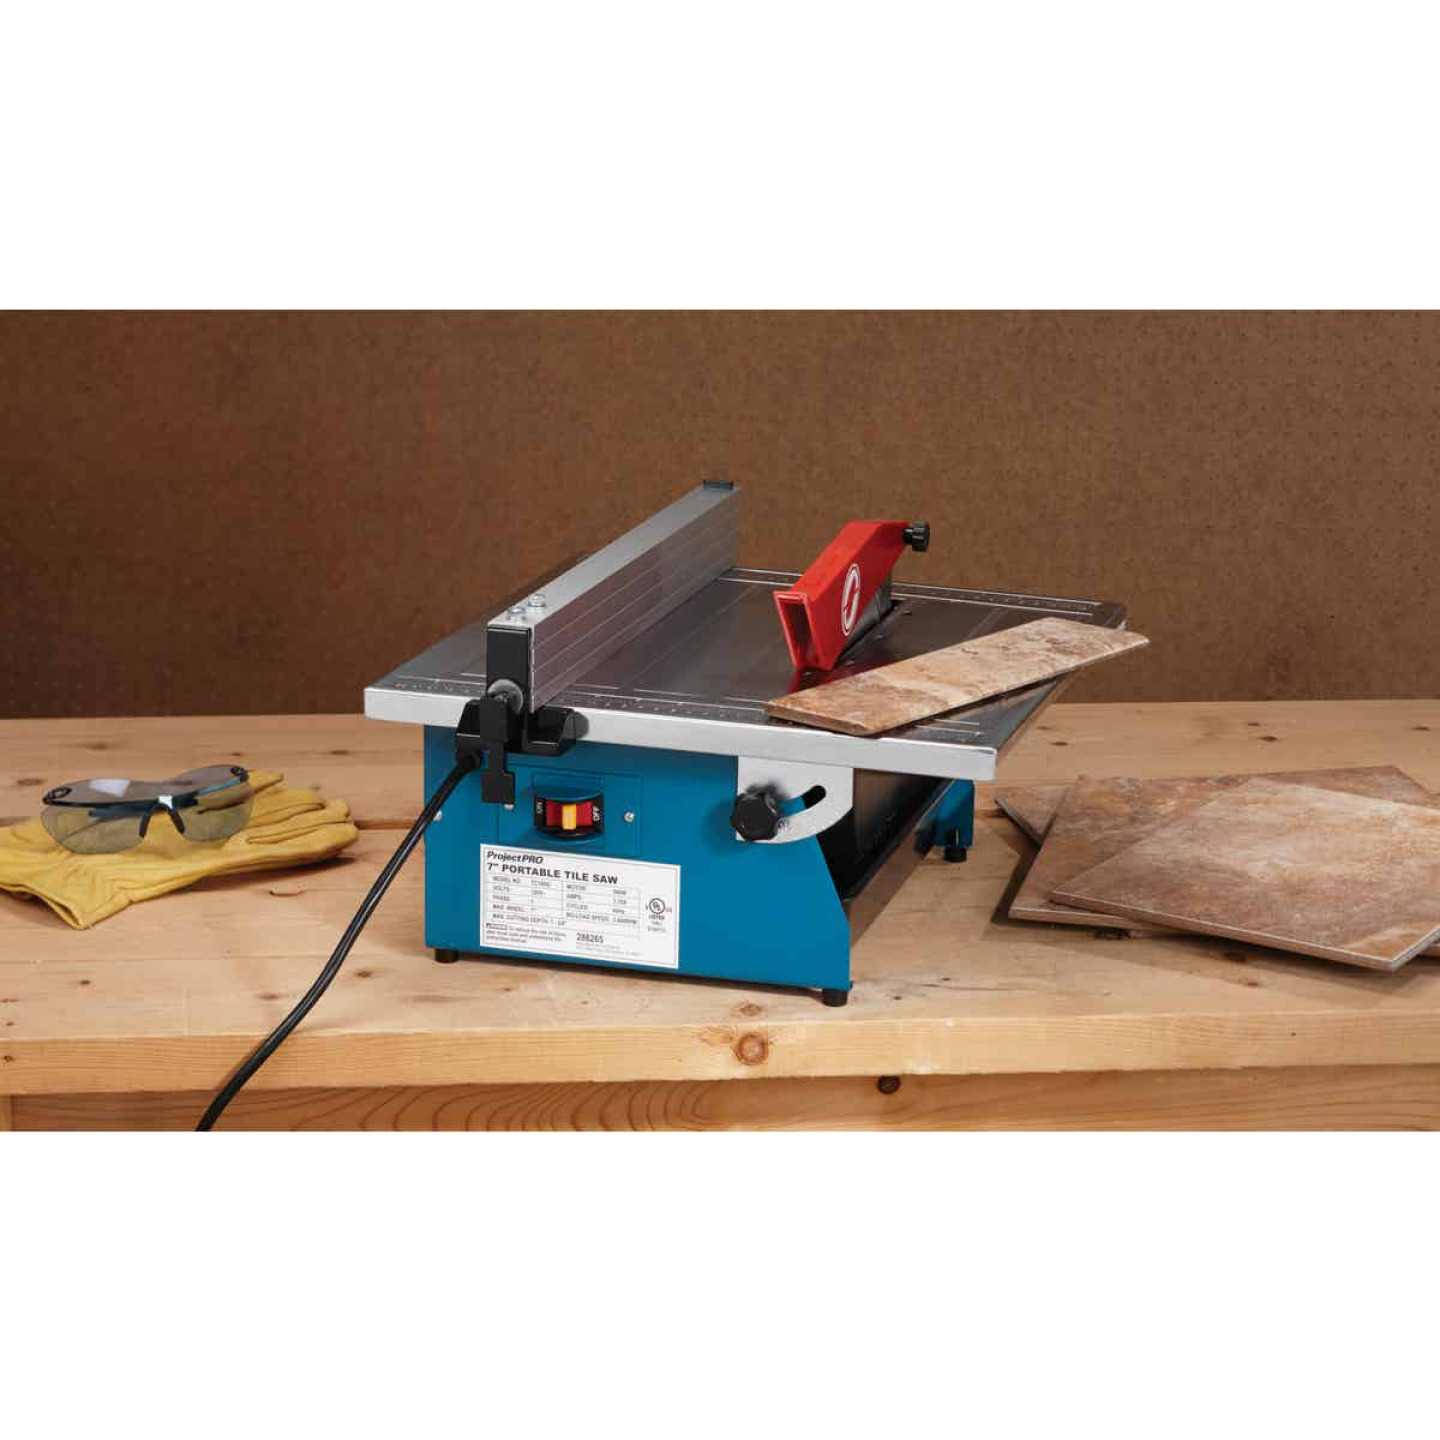 Project Pro 7 In. Portable Tile Saw Image 2